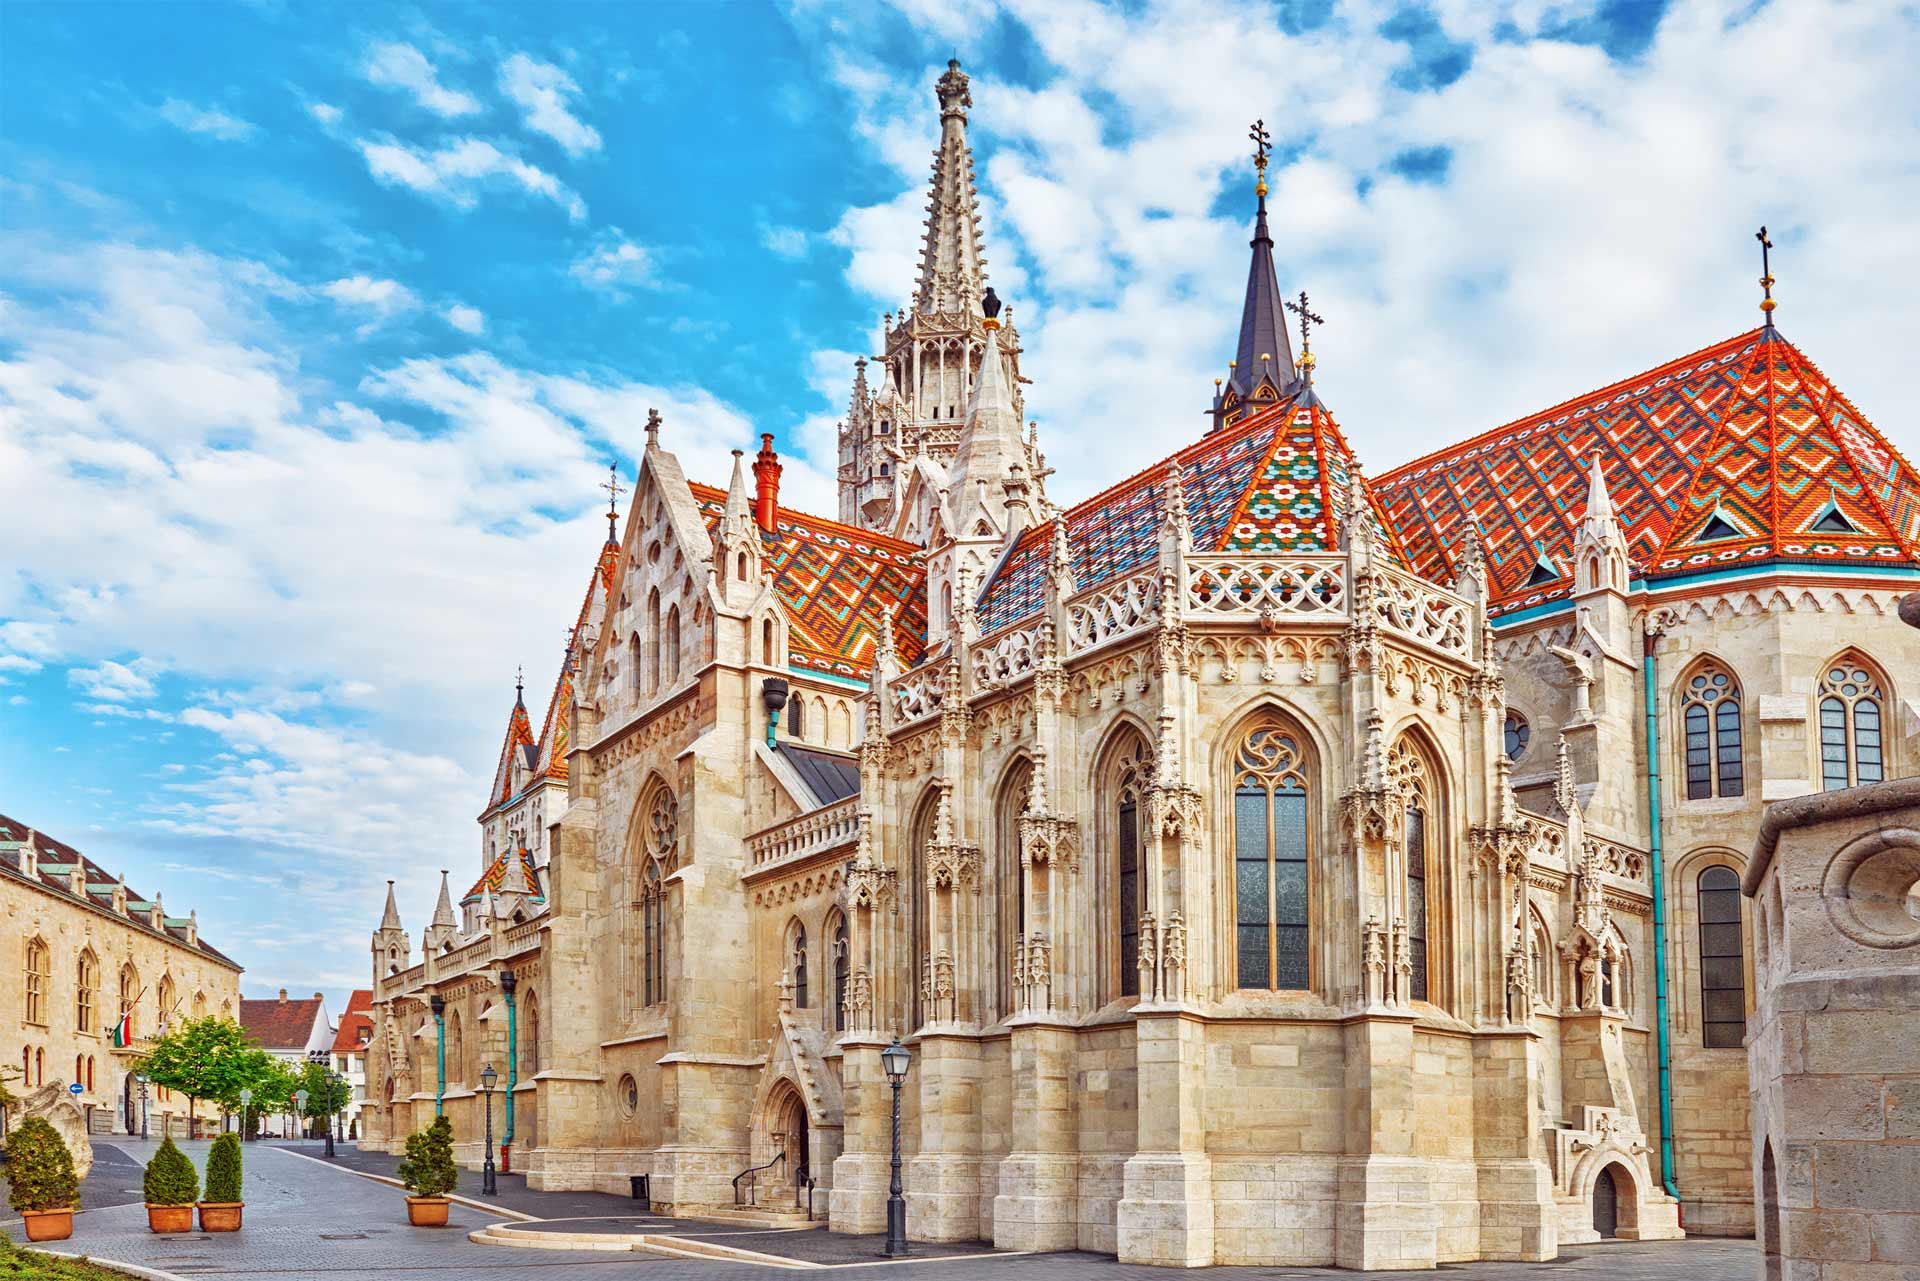 St. Matthias Church in Budapest. One of the main temple in Hungary.